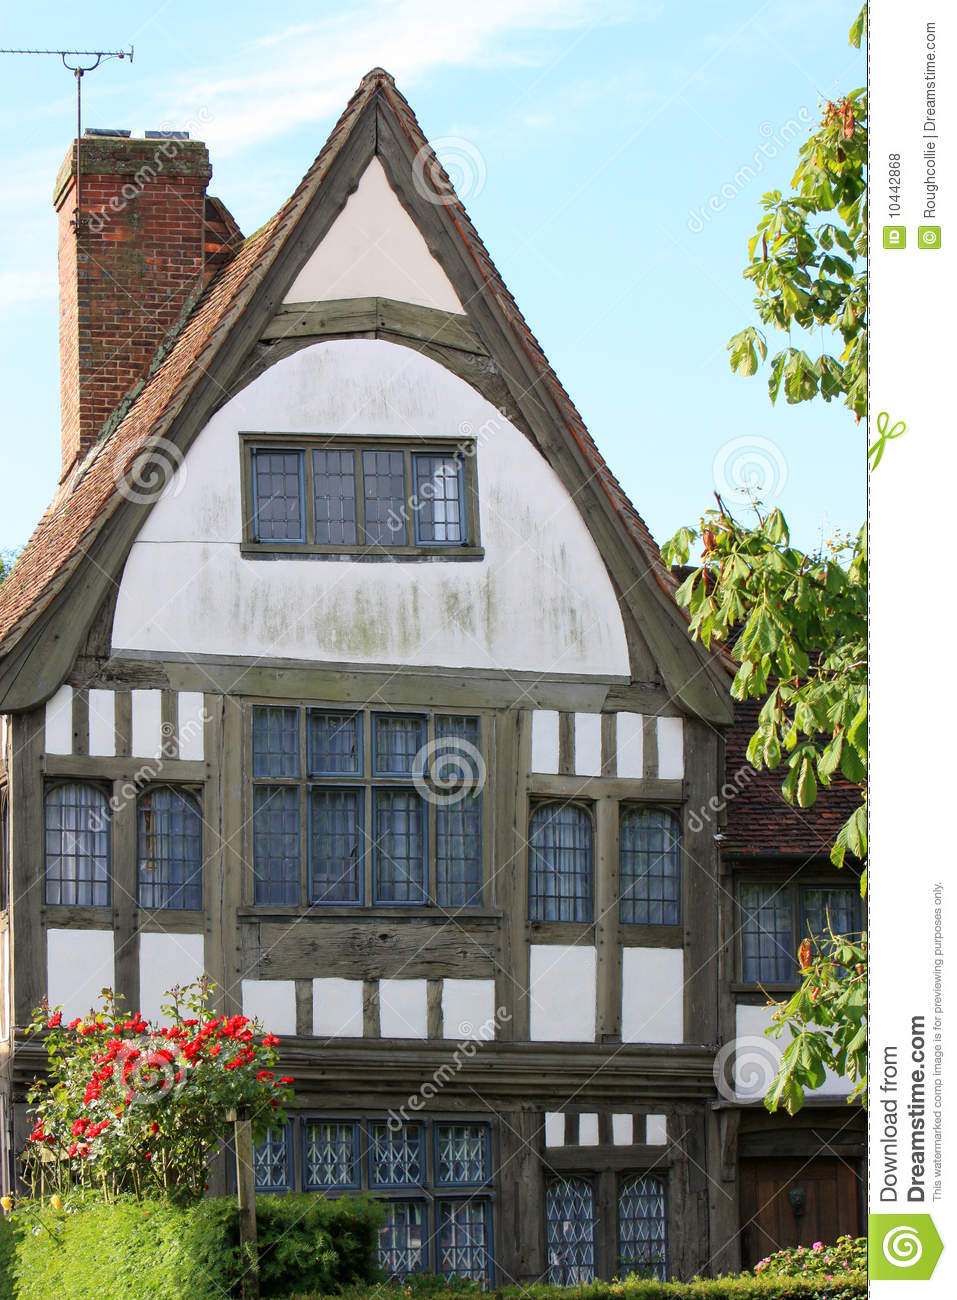 Old tudor house english stock photo image of village for Half timbered house plans